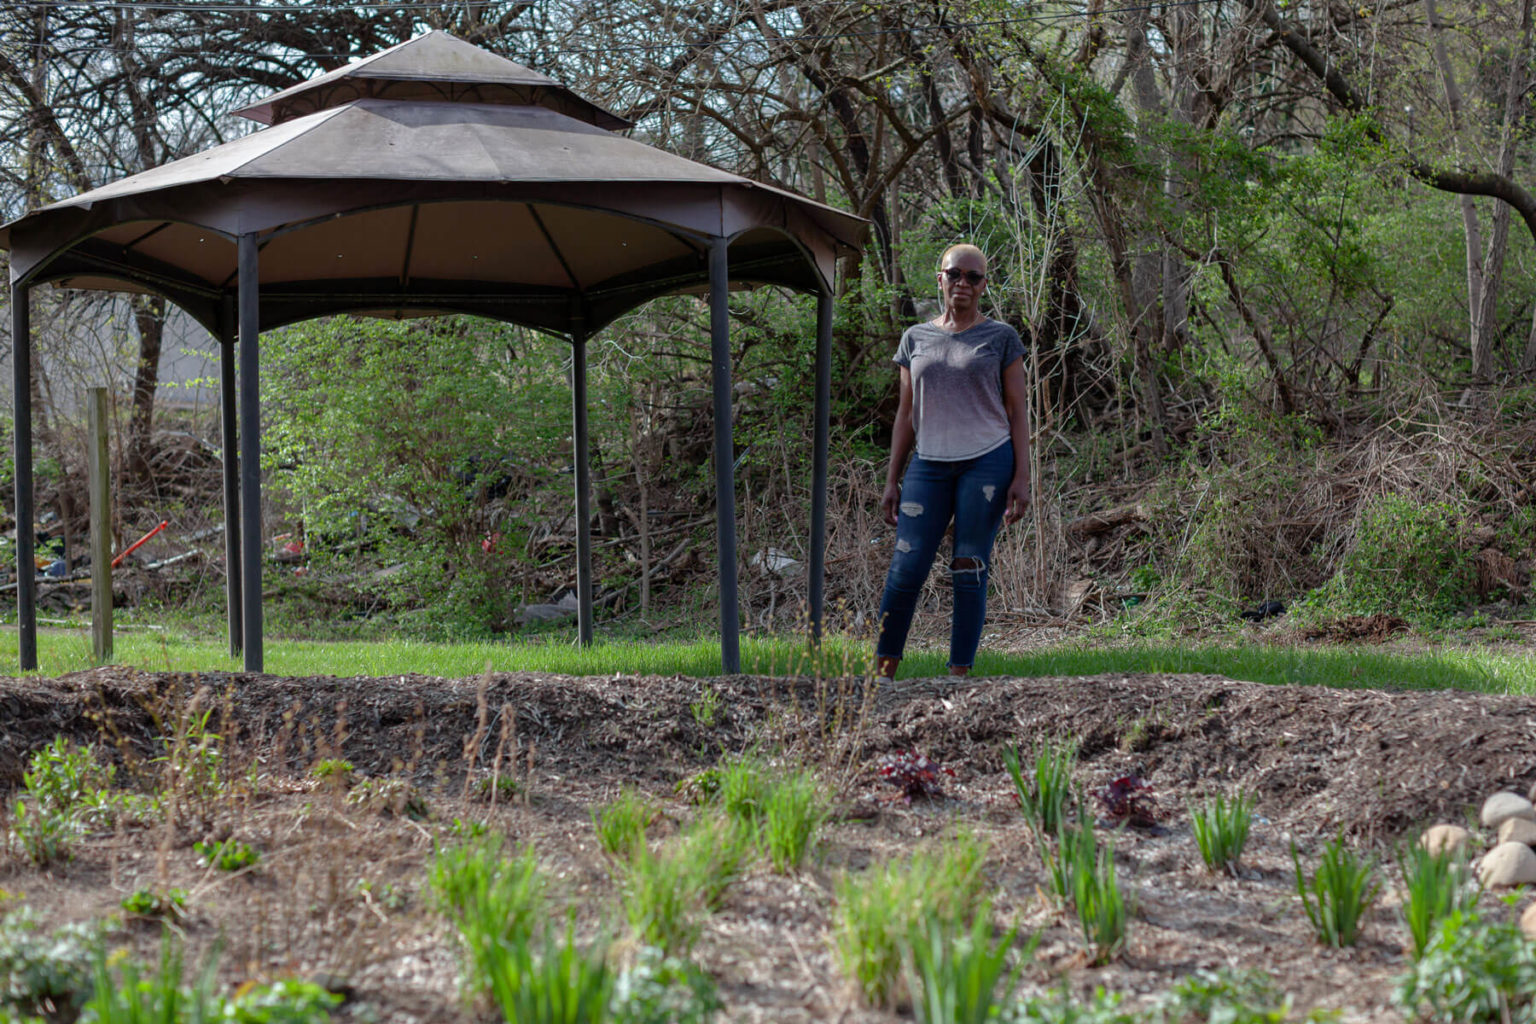 Betty Foster-Pinkley stands in front of a rain garden that UpstreamPgh, an environmental nonprofit, installed in her backyard. (Photo by Quinn Glabicki/PublicSource)